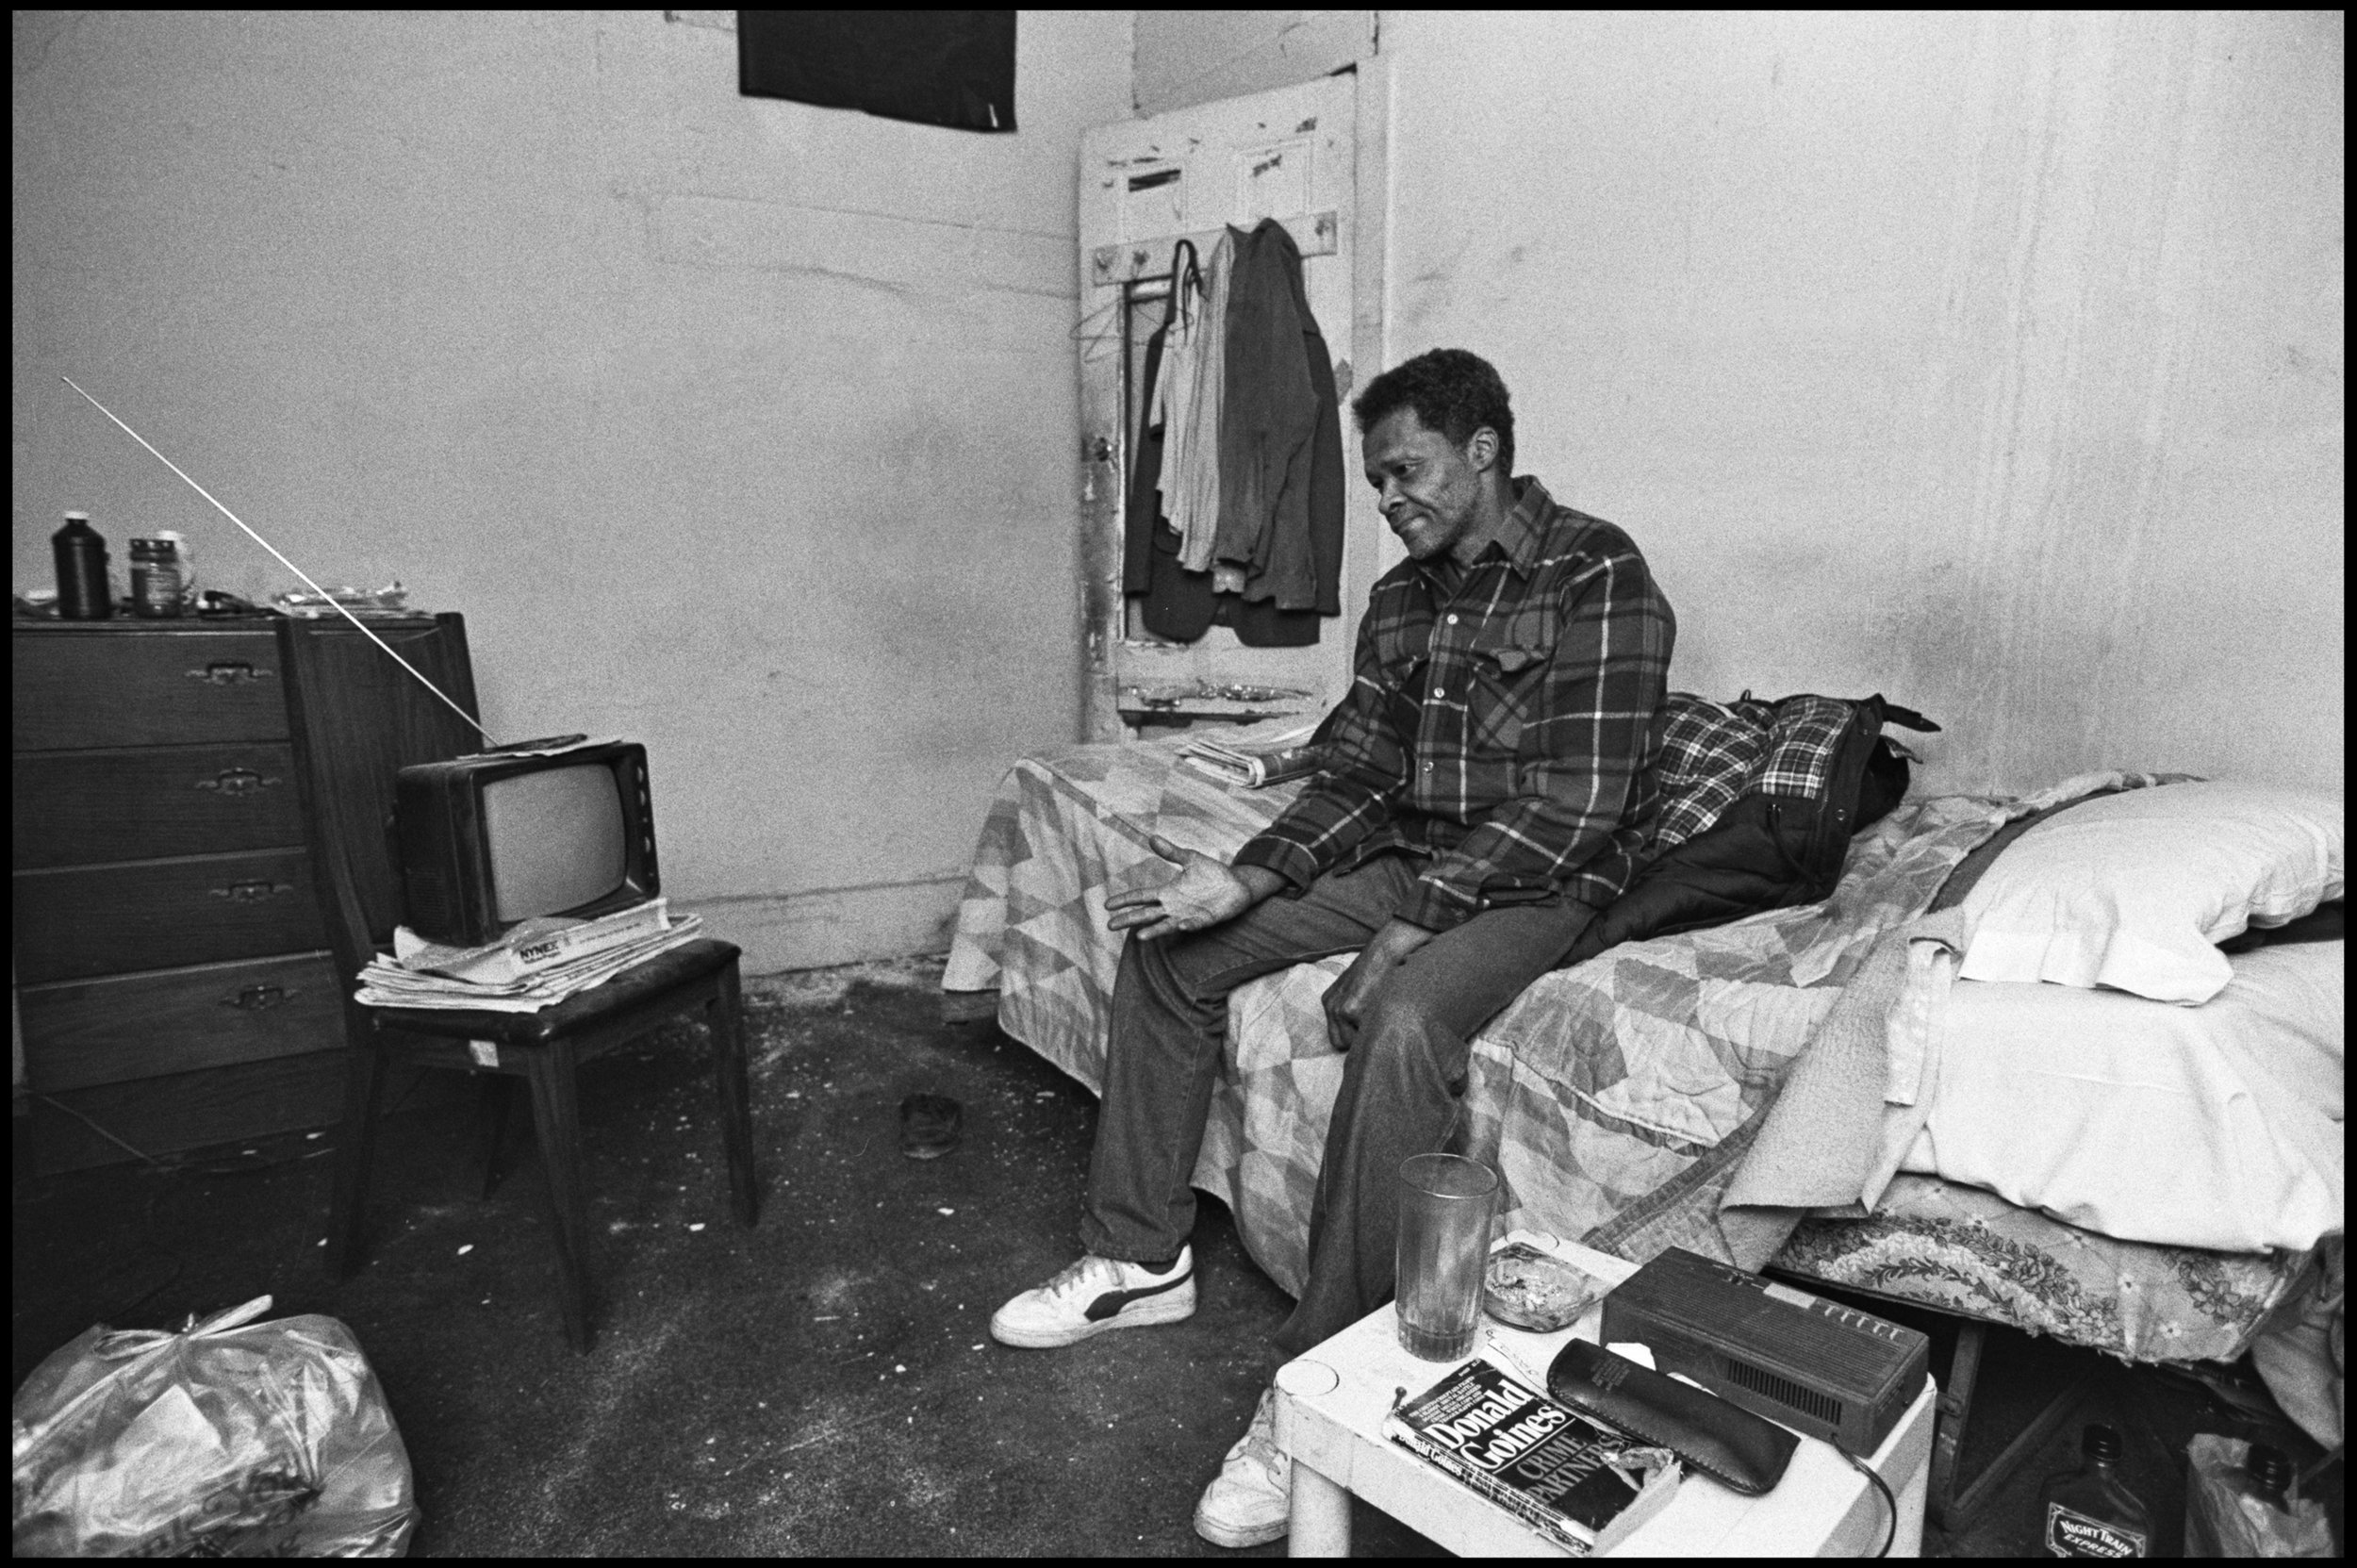 South Bronx, January 1990. Photograph by Larry Racioppo.